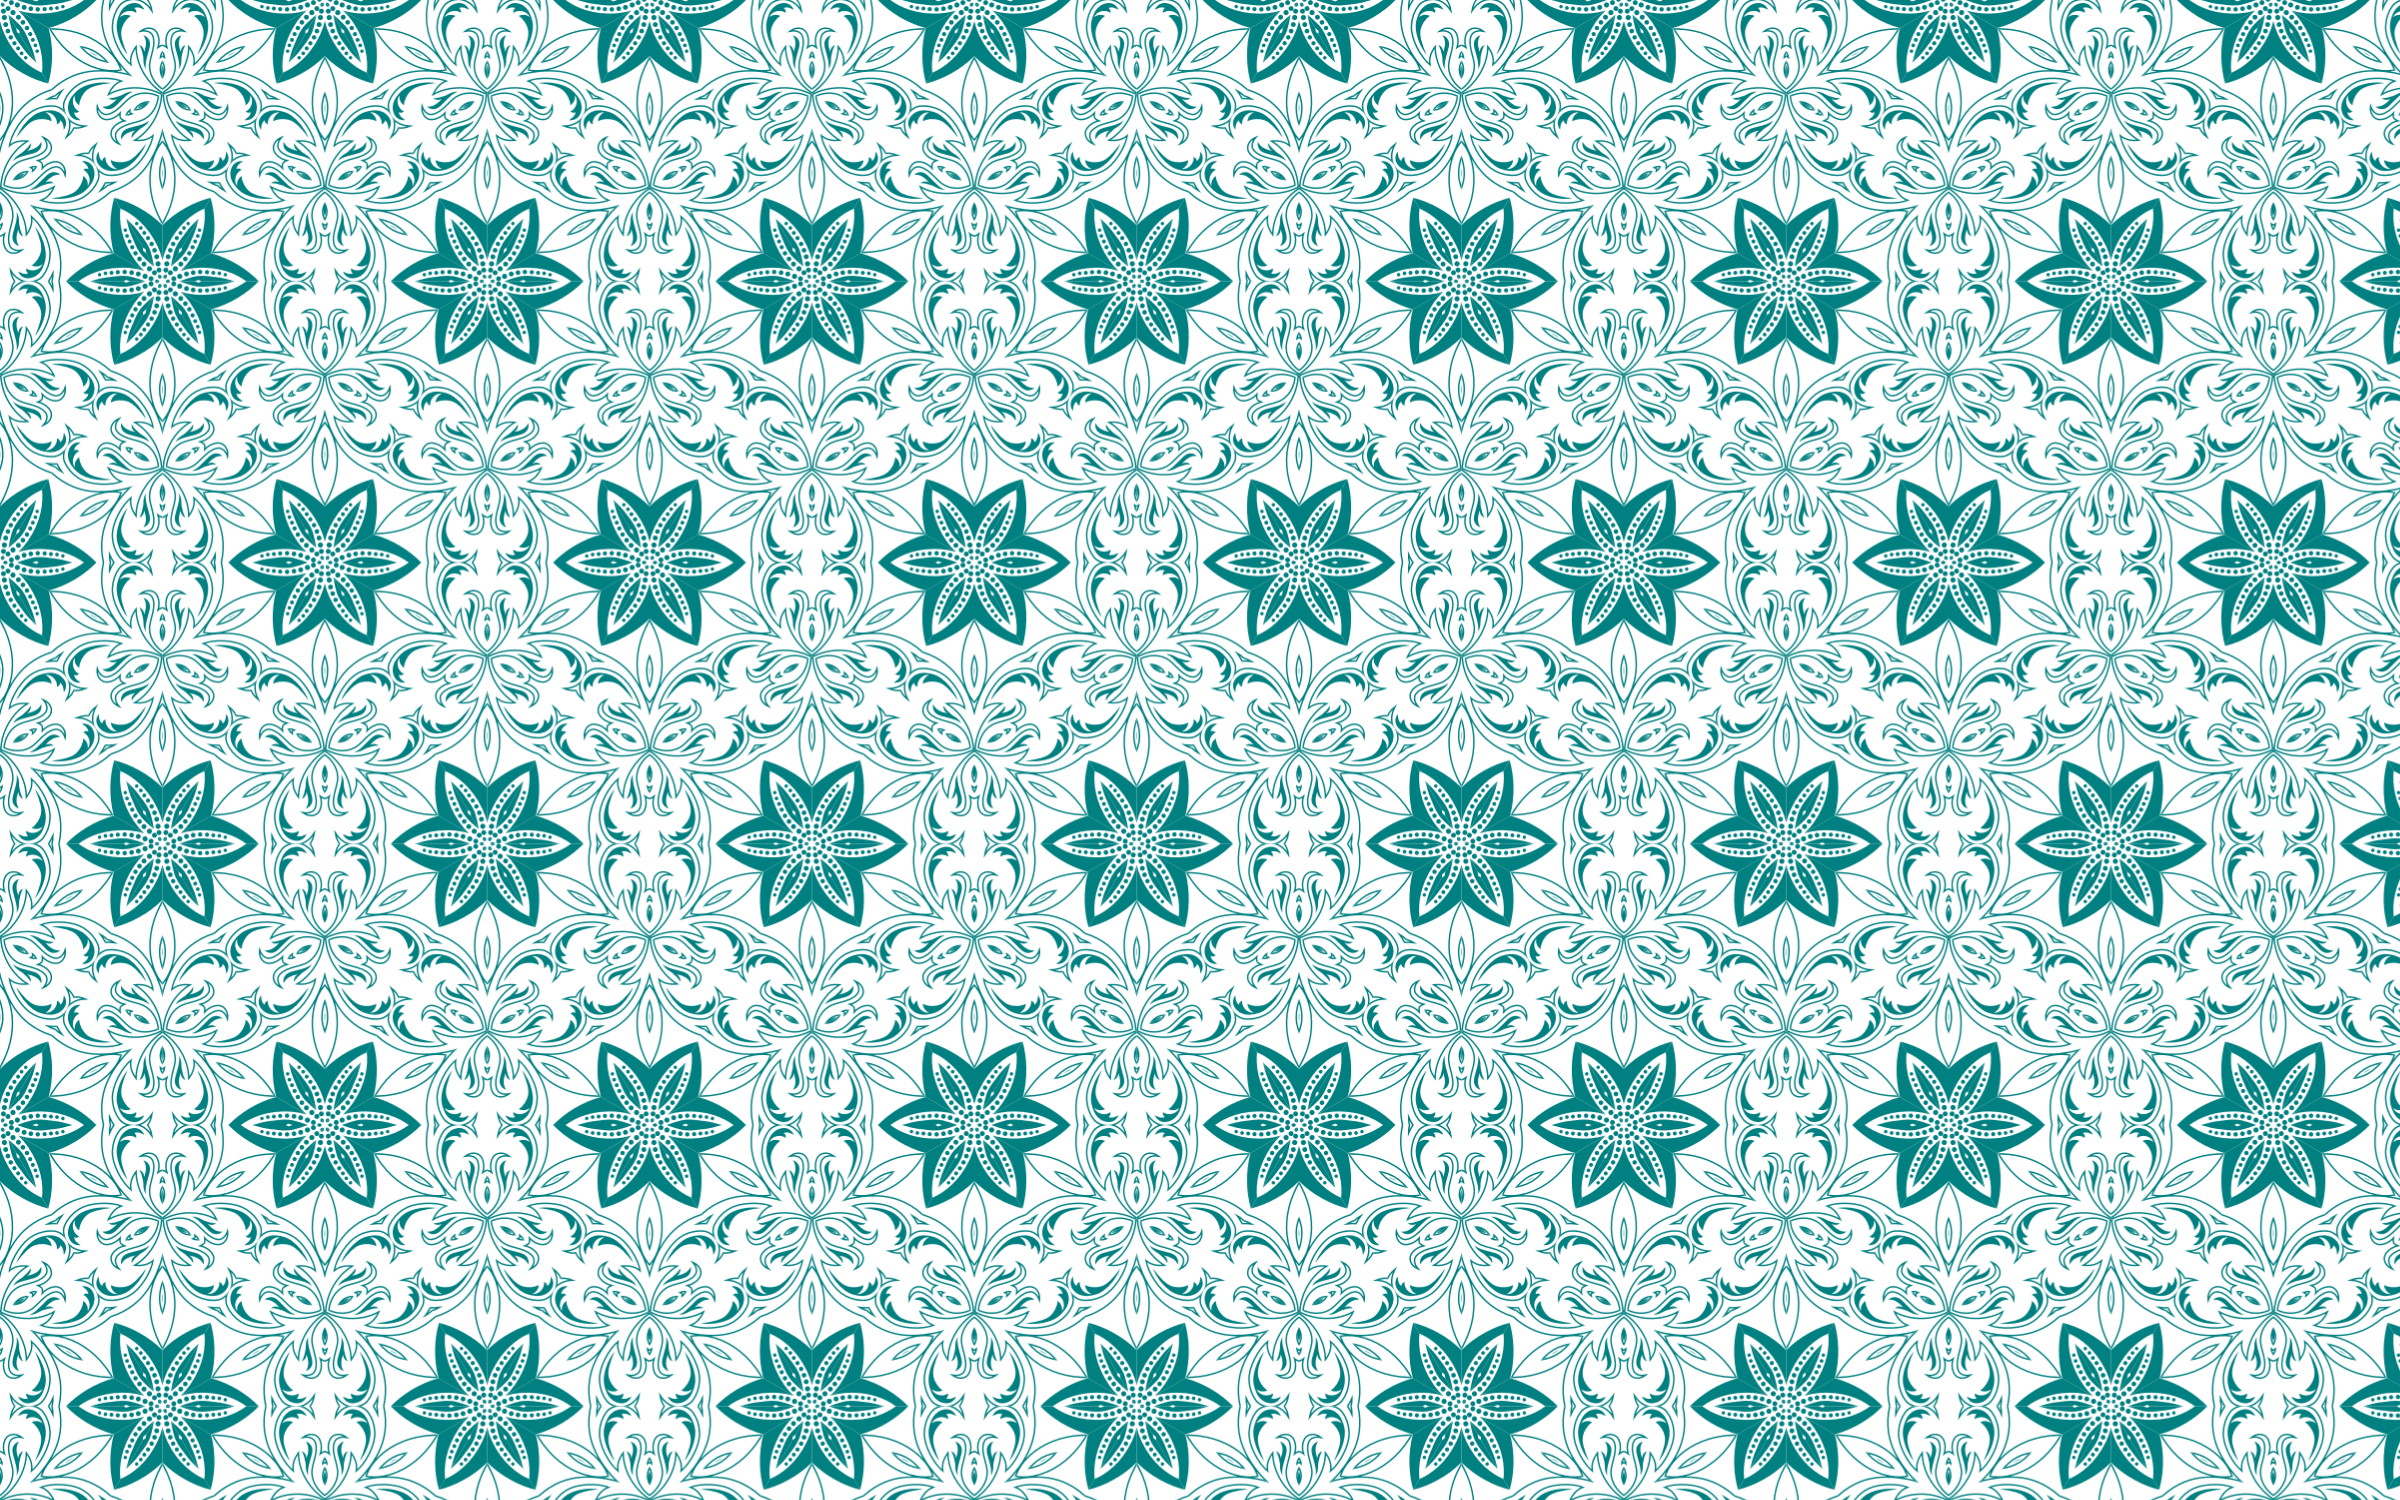 Seamless Pattern 147 by GDJ